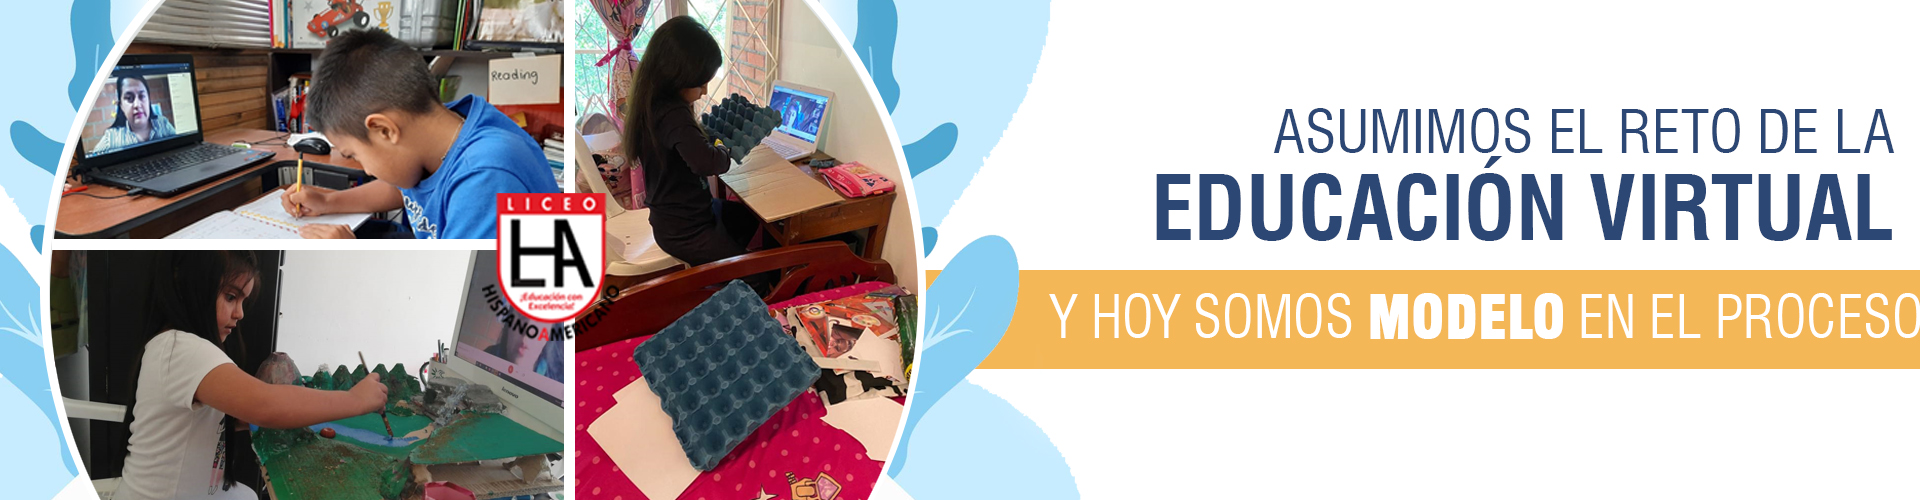 banner educacion virtual